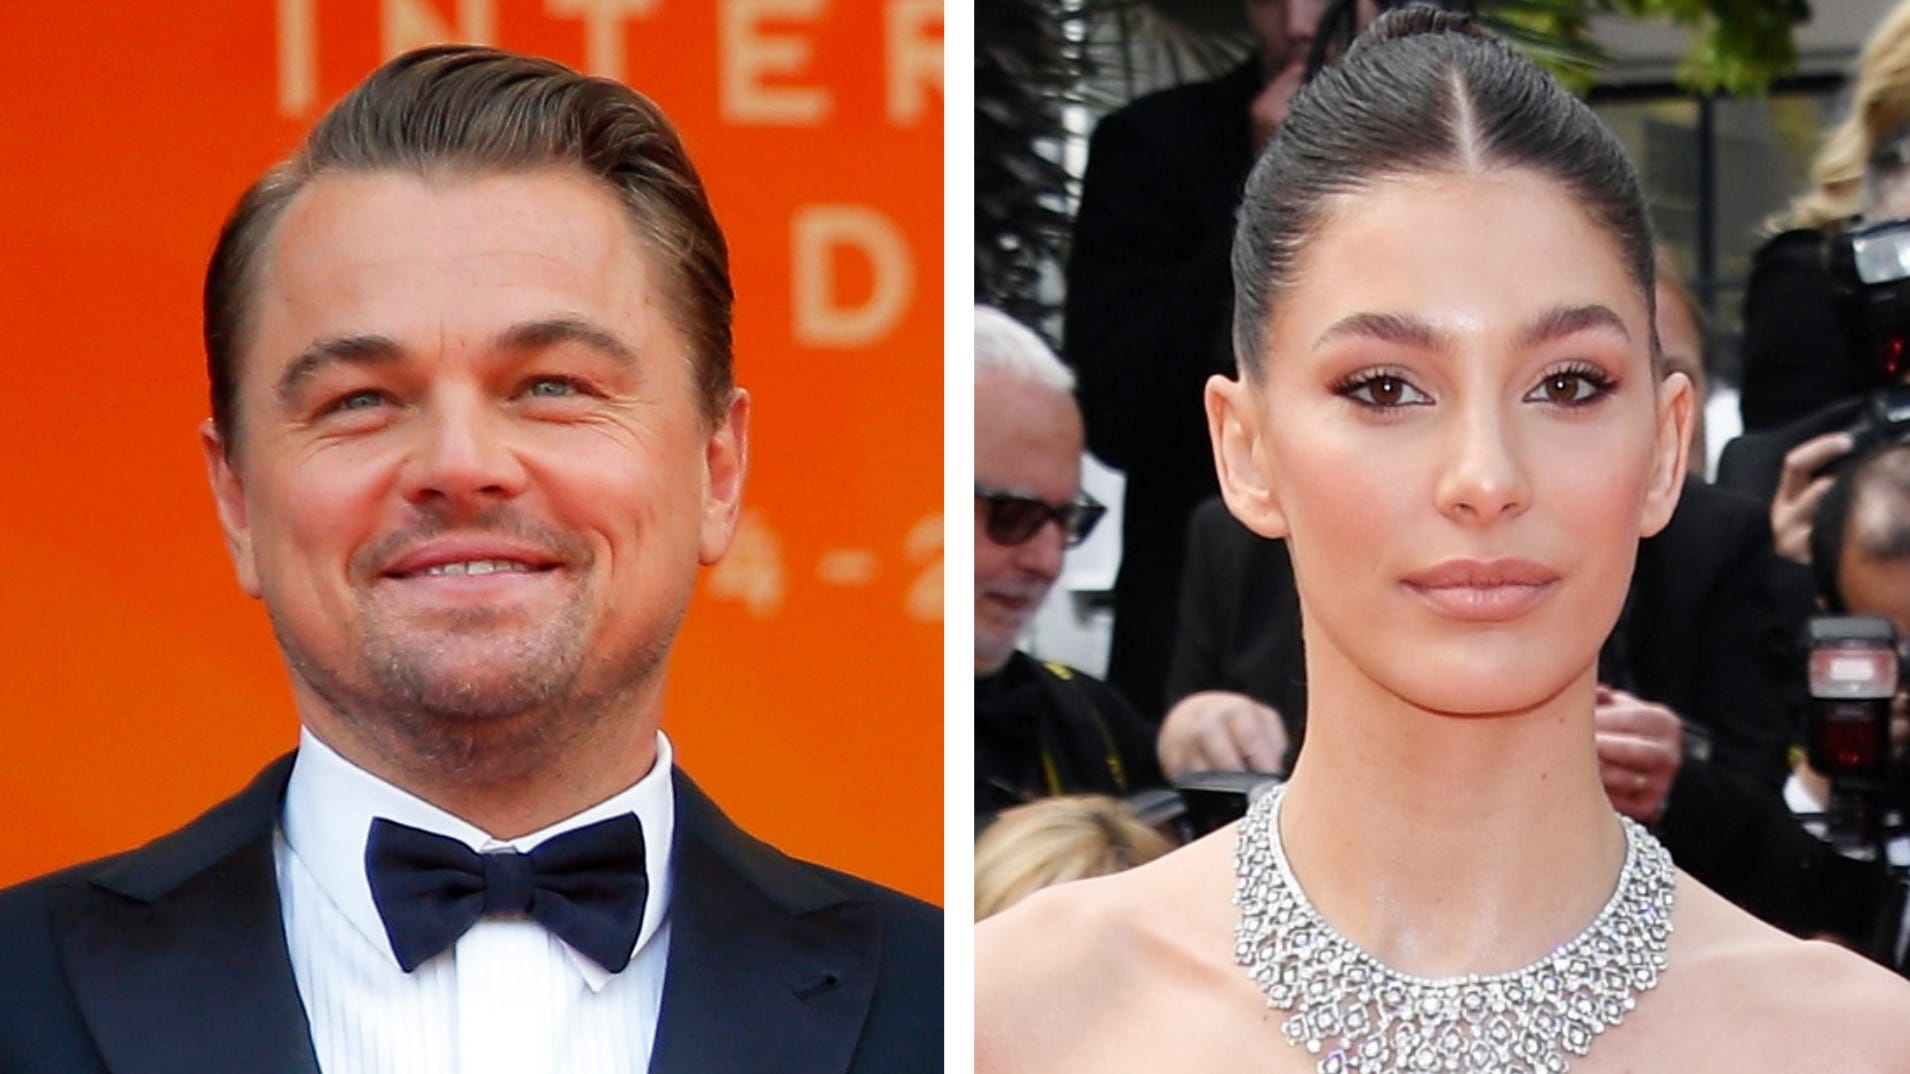 """Leonardo DiCaprio looked happy at the premiere of """"Once Upon a Time in Hollywood,"""" which his girlfriend Camila Morrone also attended."""